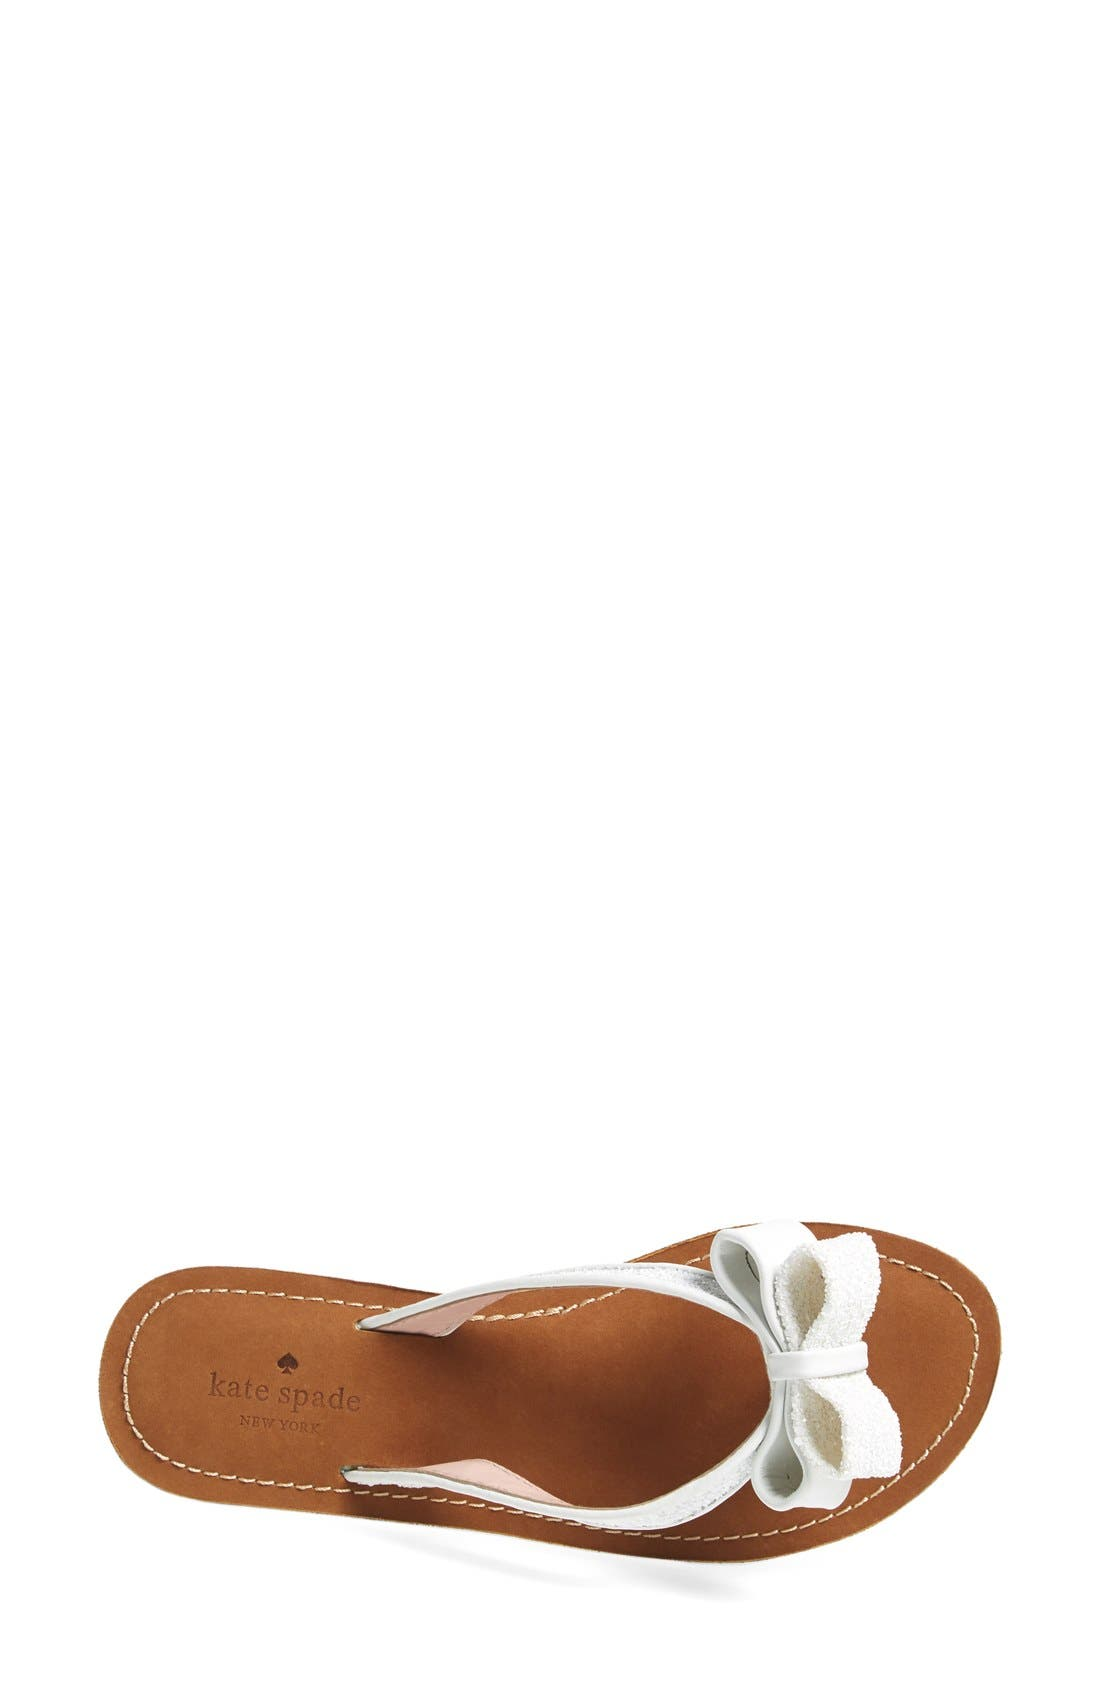 Alternate Image 3  - kate spade new york 'icarda' glitter flip flop (Women)